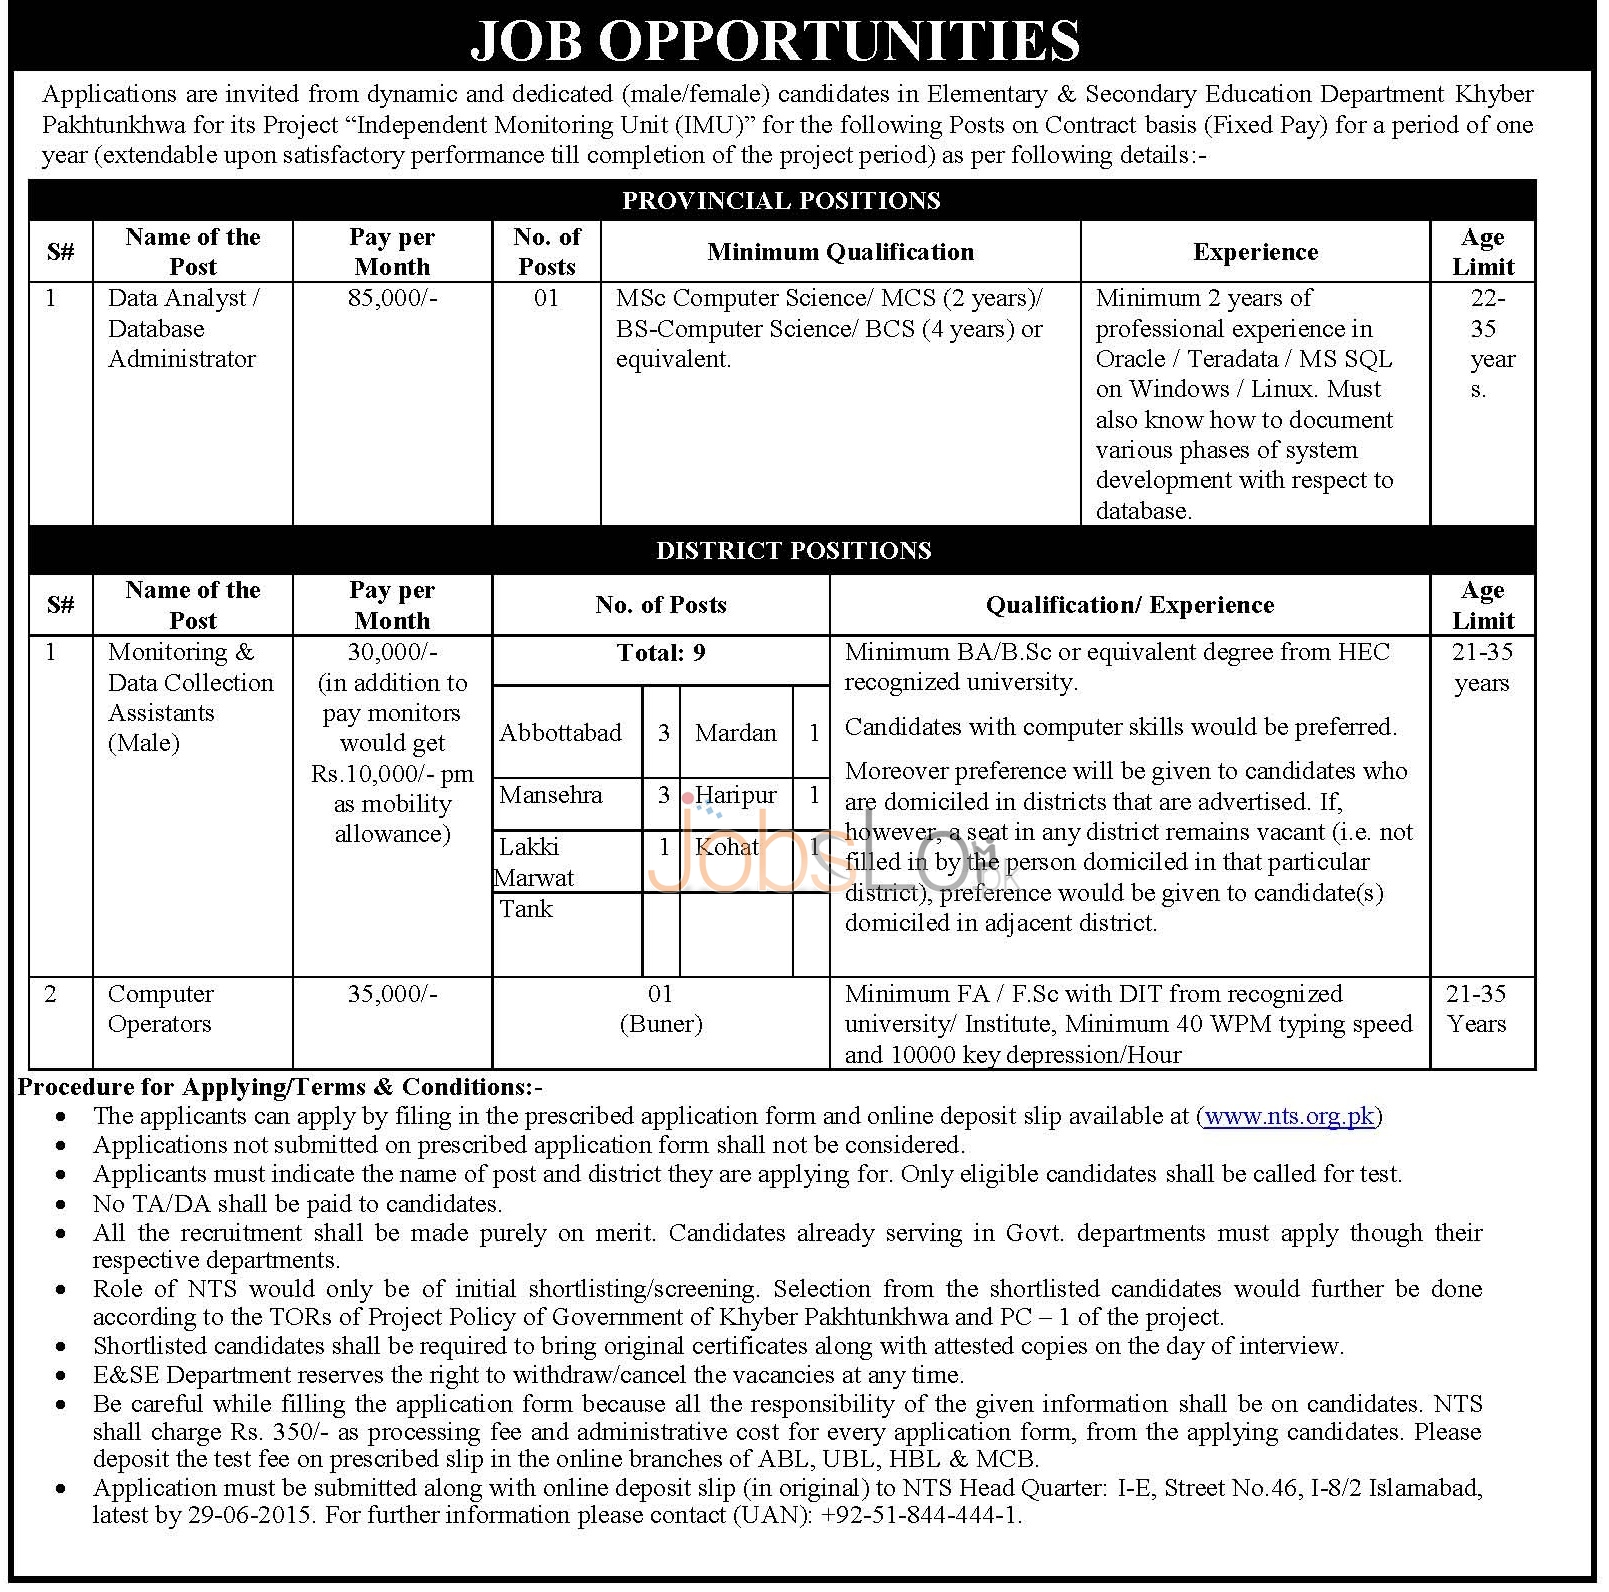 Elementary & Secondary Education Department KPK Jobs